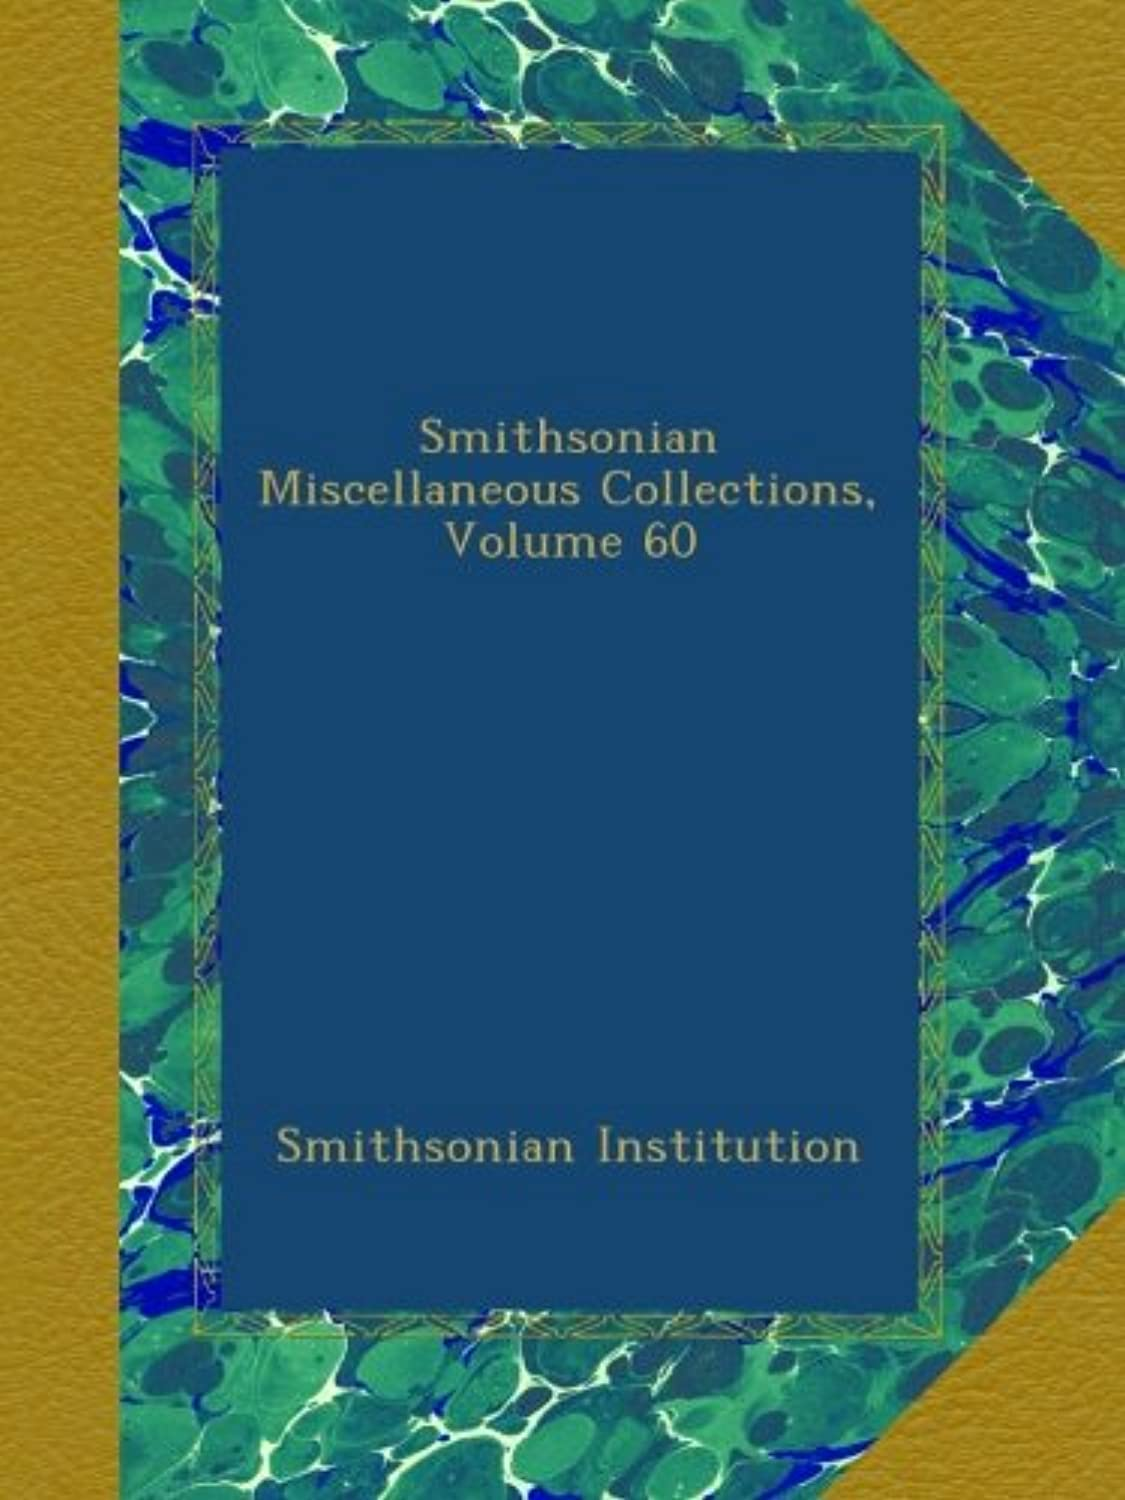 Smithsonian Miscellaneous Collections, Volume 60